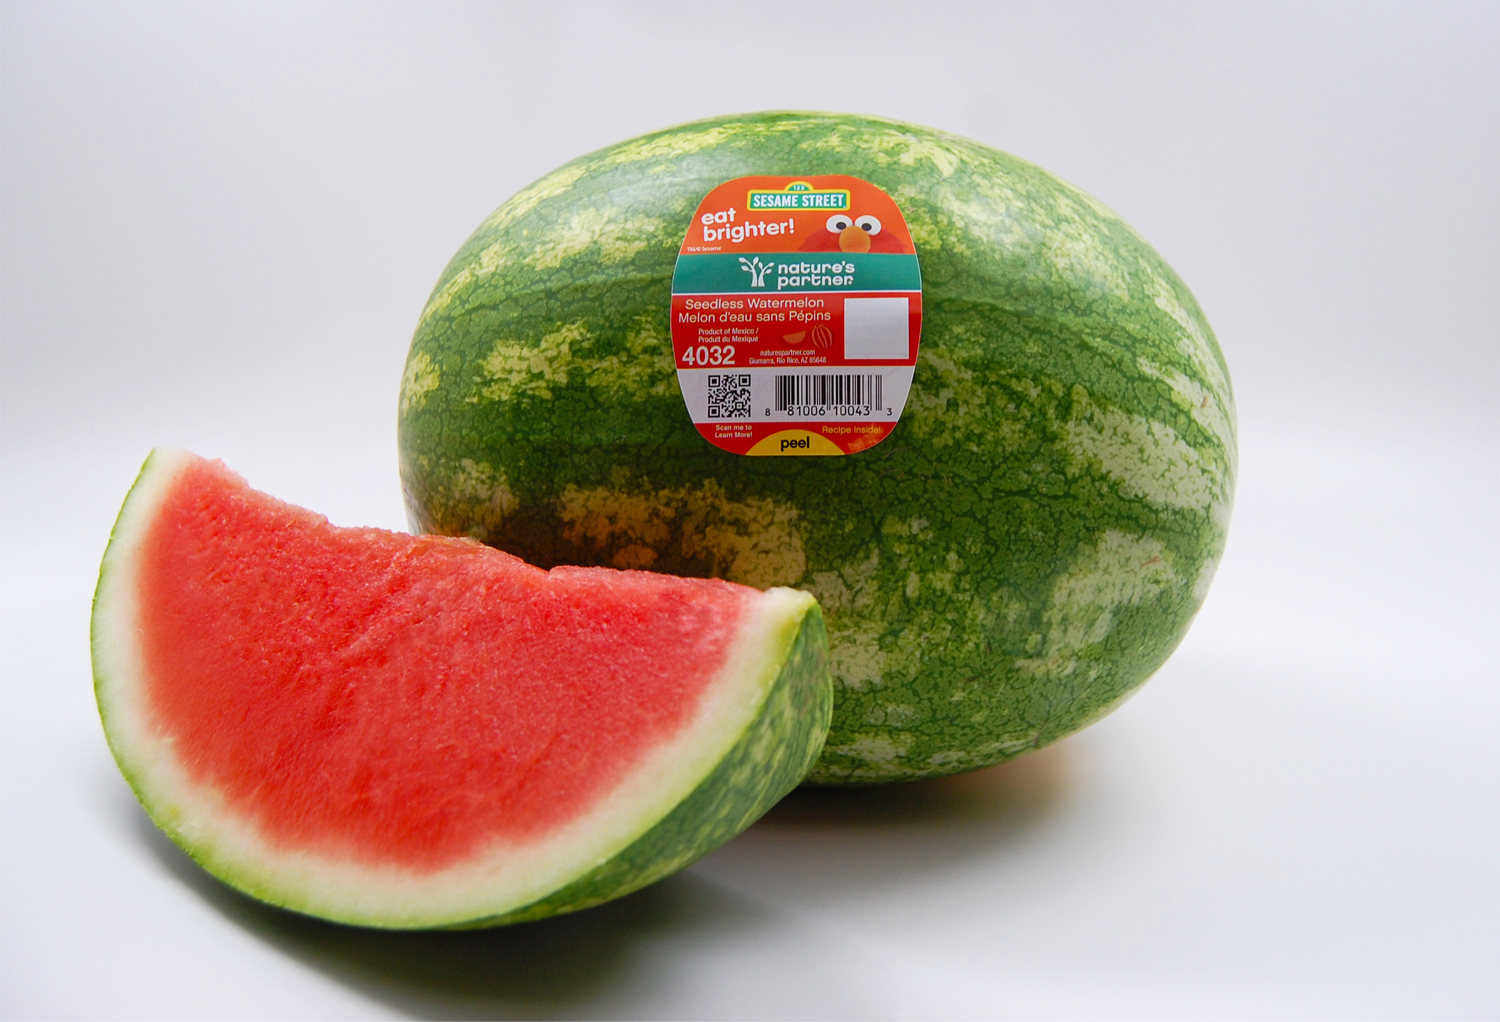 Nature's Partner watermelon featuring Elmo of  Sesame Street .  Click here to download high resolution image.